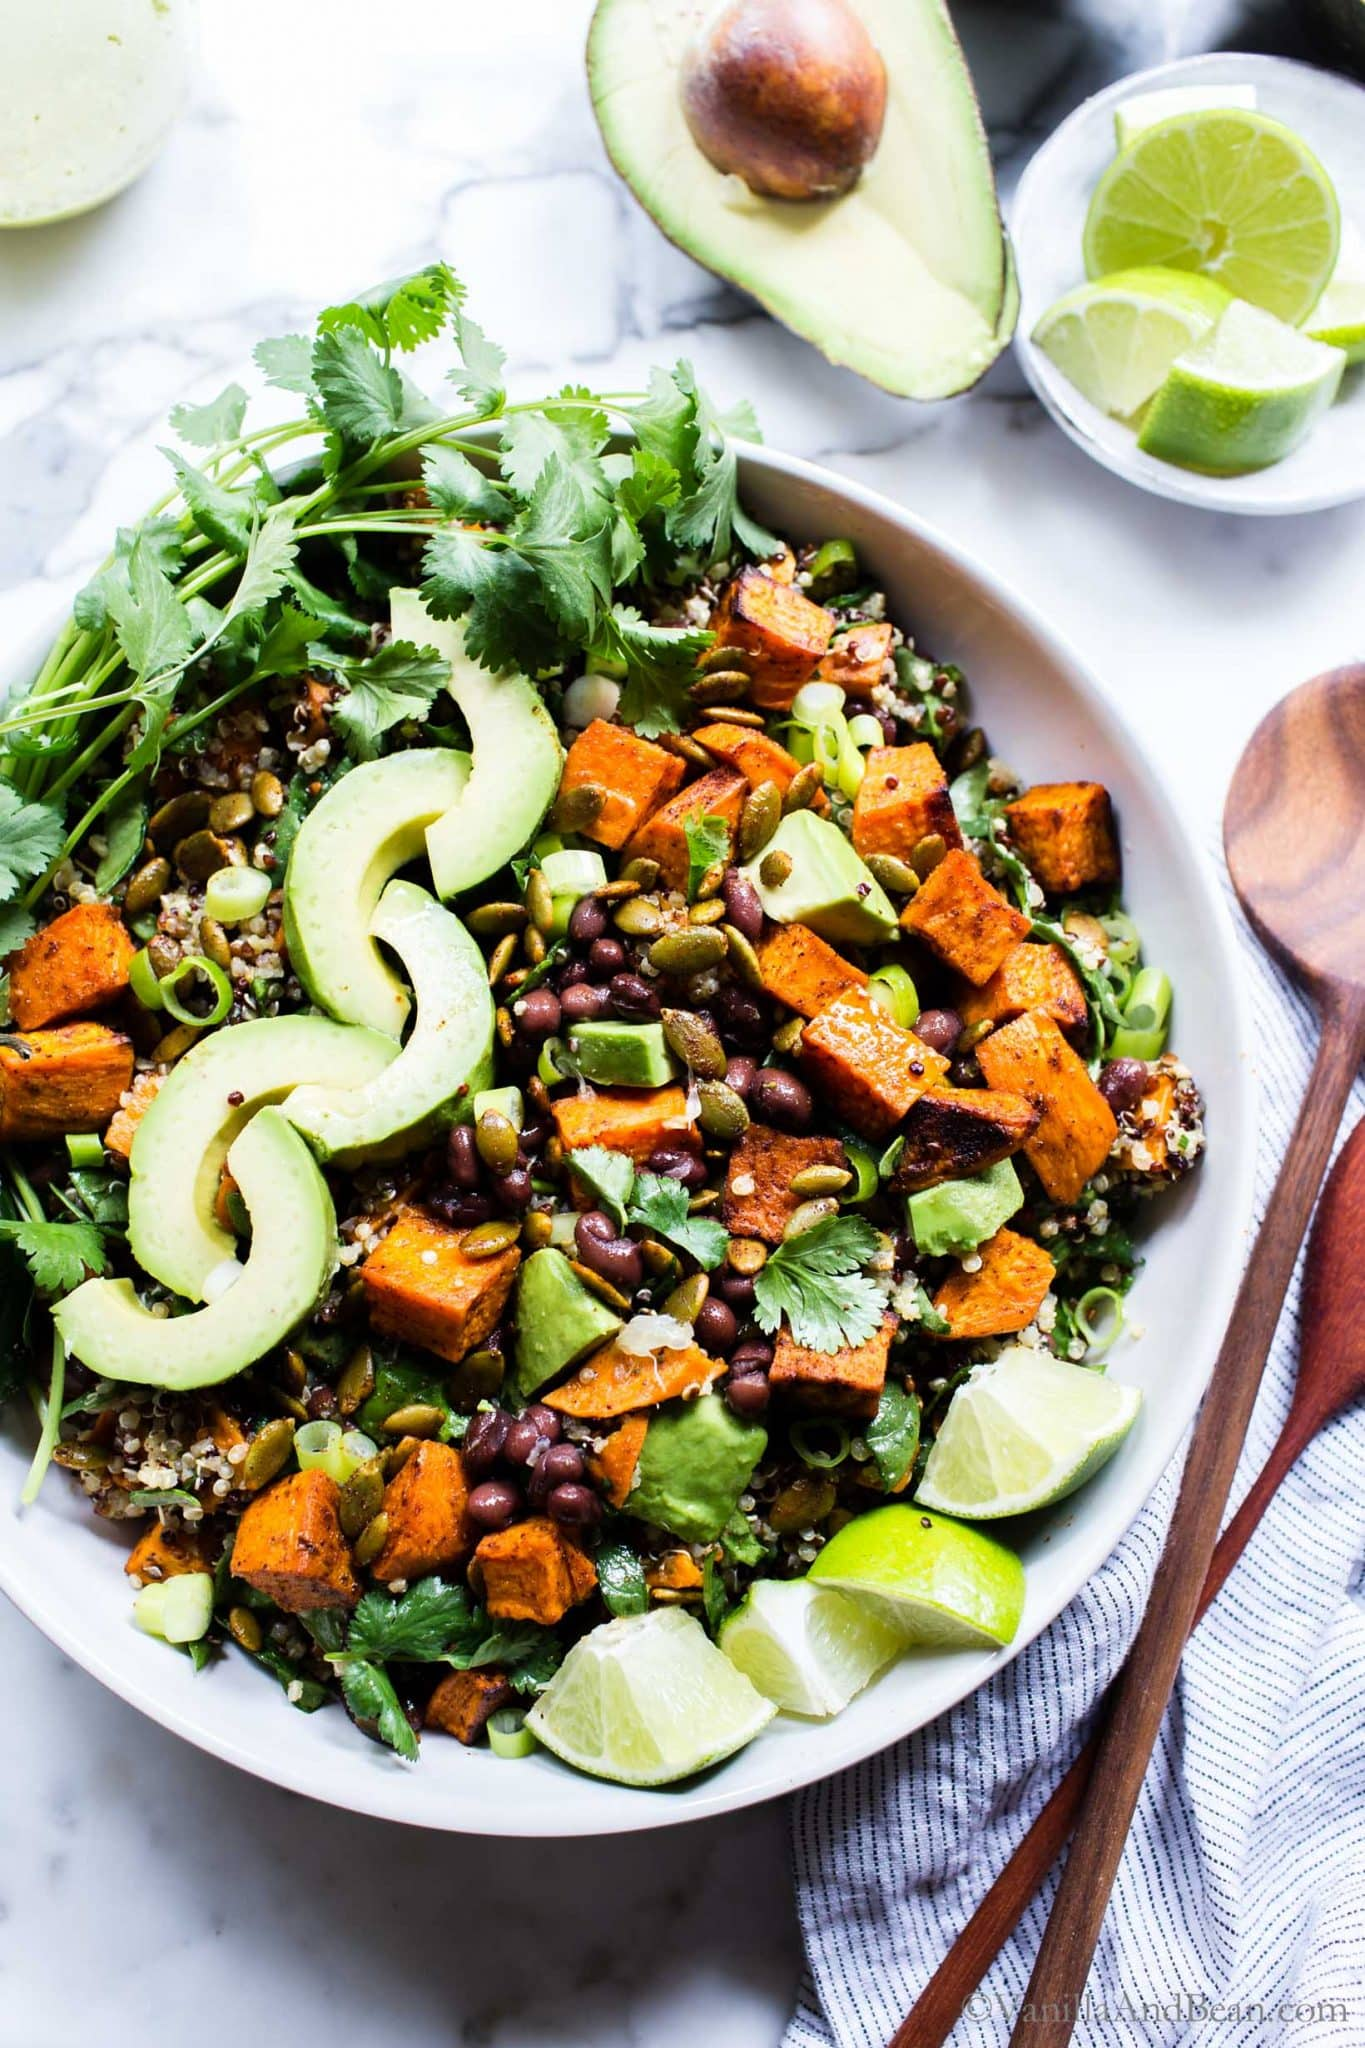 Sweet Potato Quinoa Salad in a bowl with spoons on the side ready to eat.